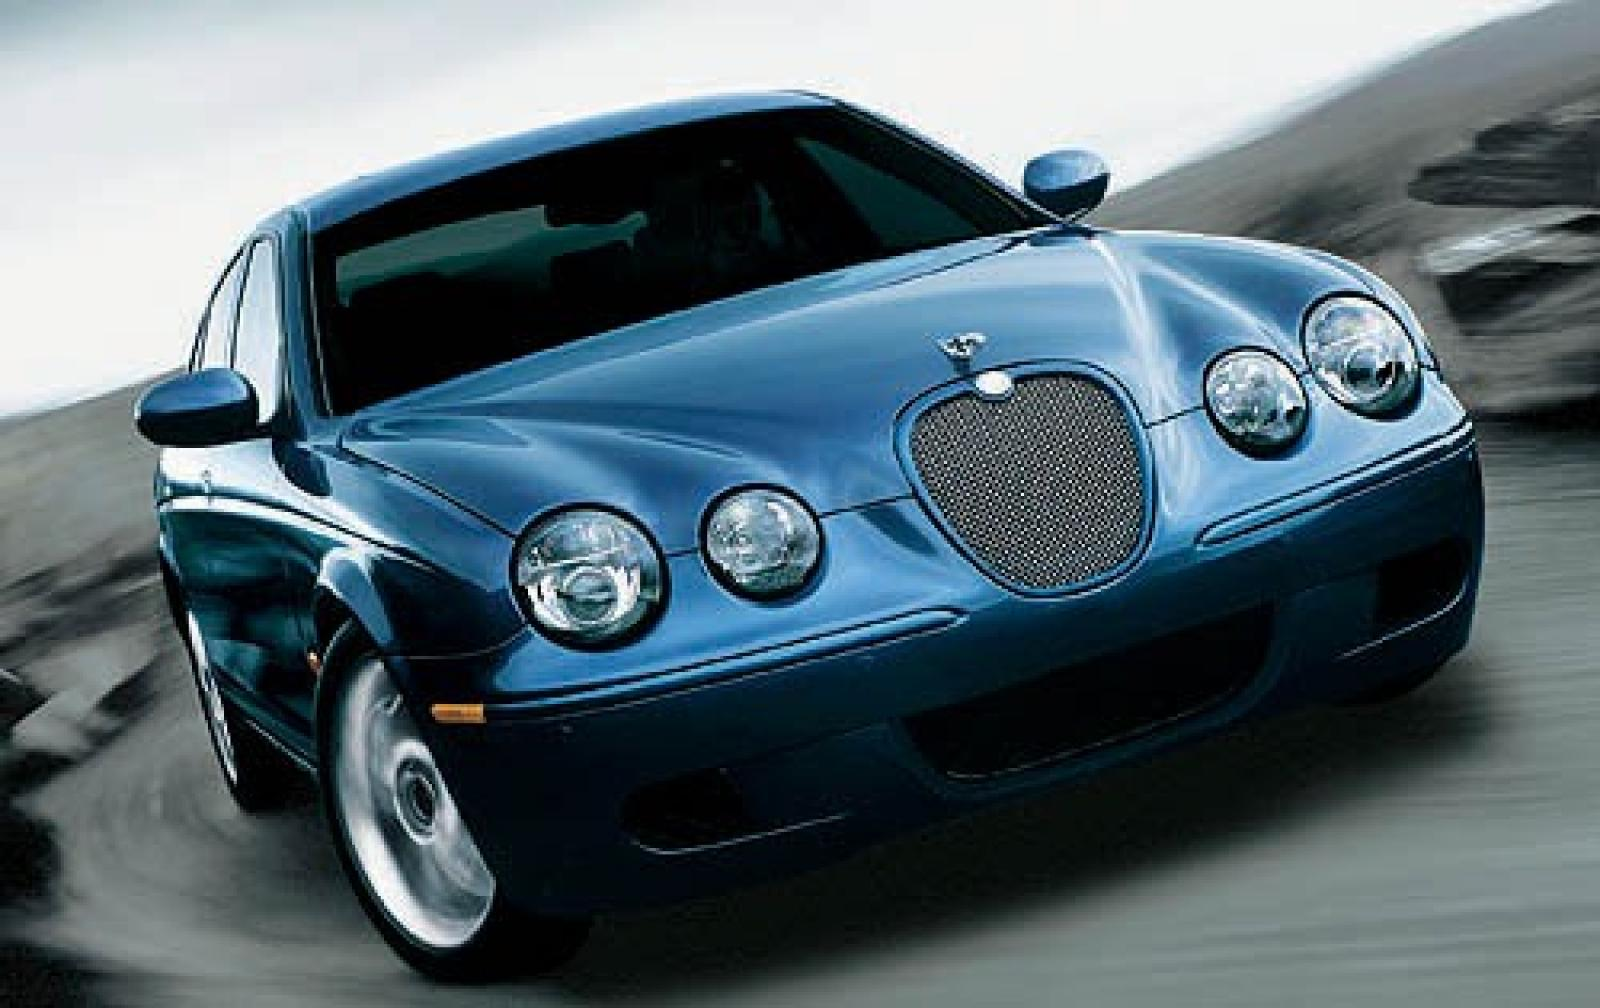 2008 jaguar s type information and photos zombiedrive. Black Bedroom Furniture Sets. Home Design Ideas